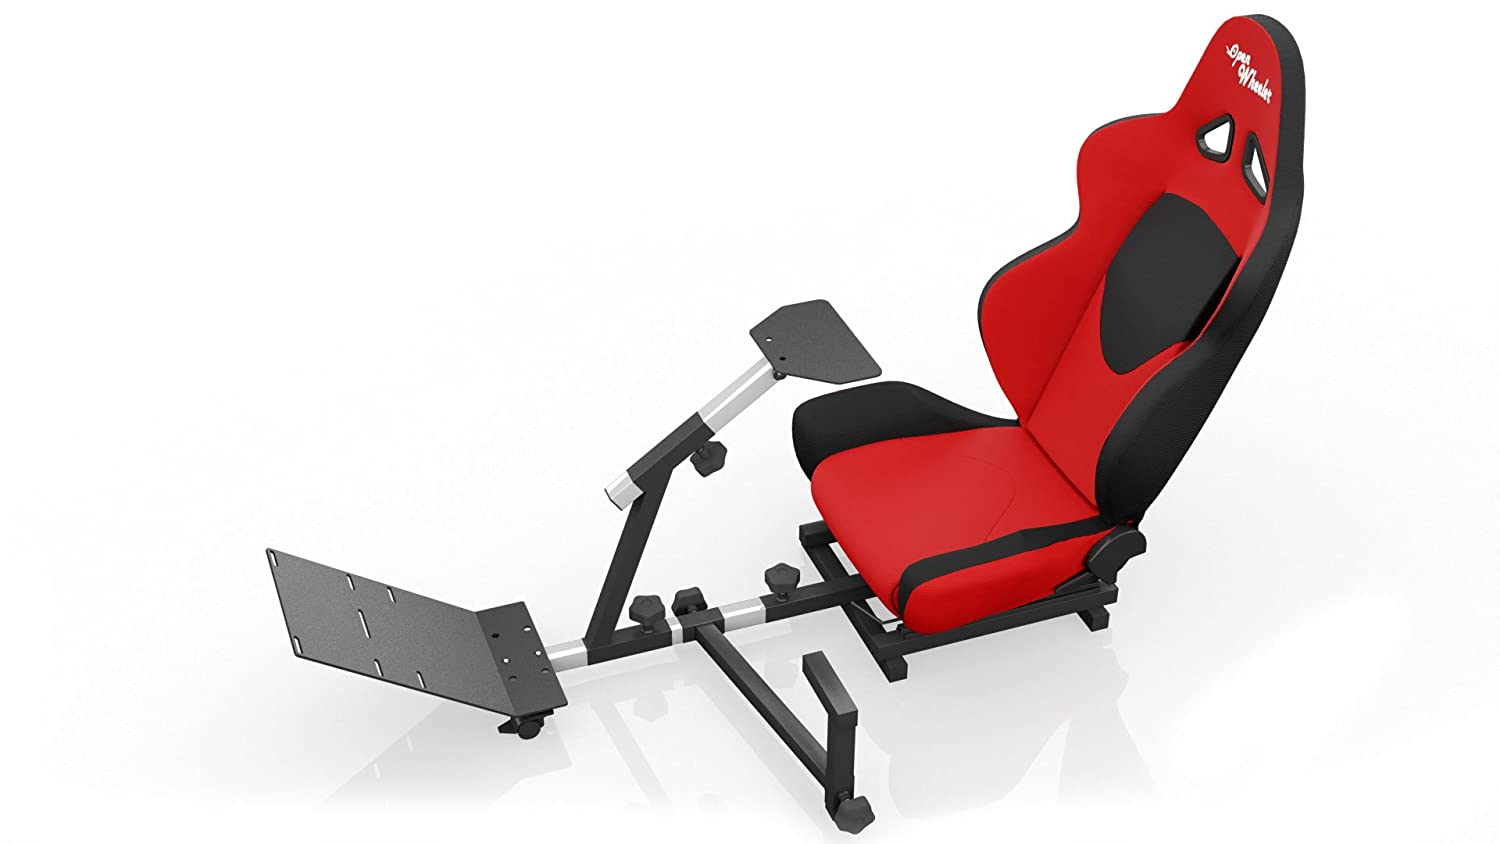 Gaming Chair For Ps3 Best racing seats, wheels and other add-ons to buy along ...